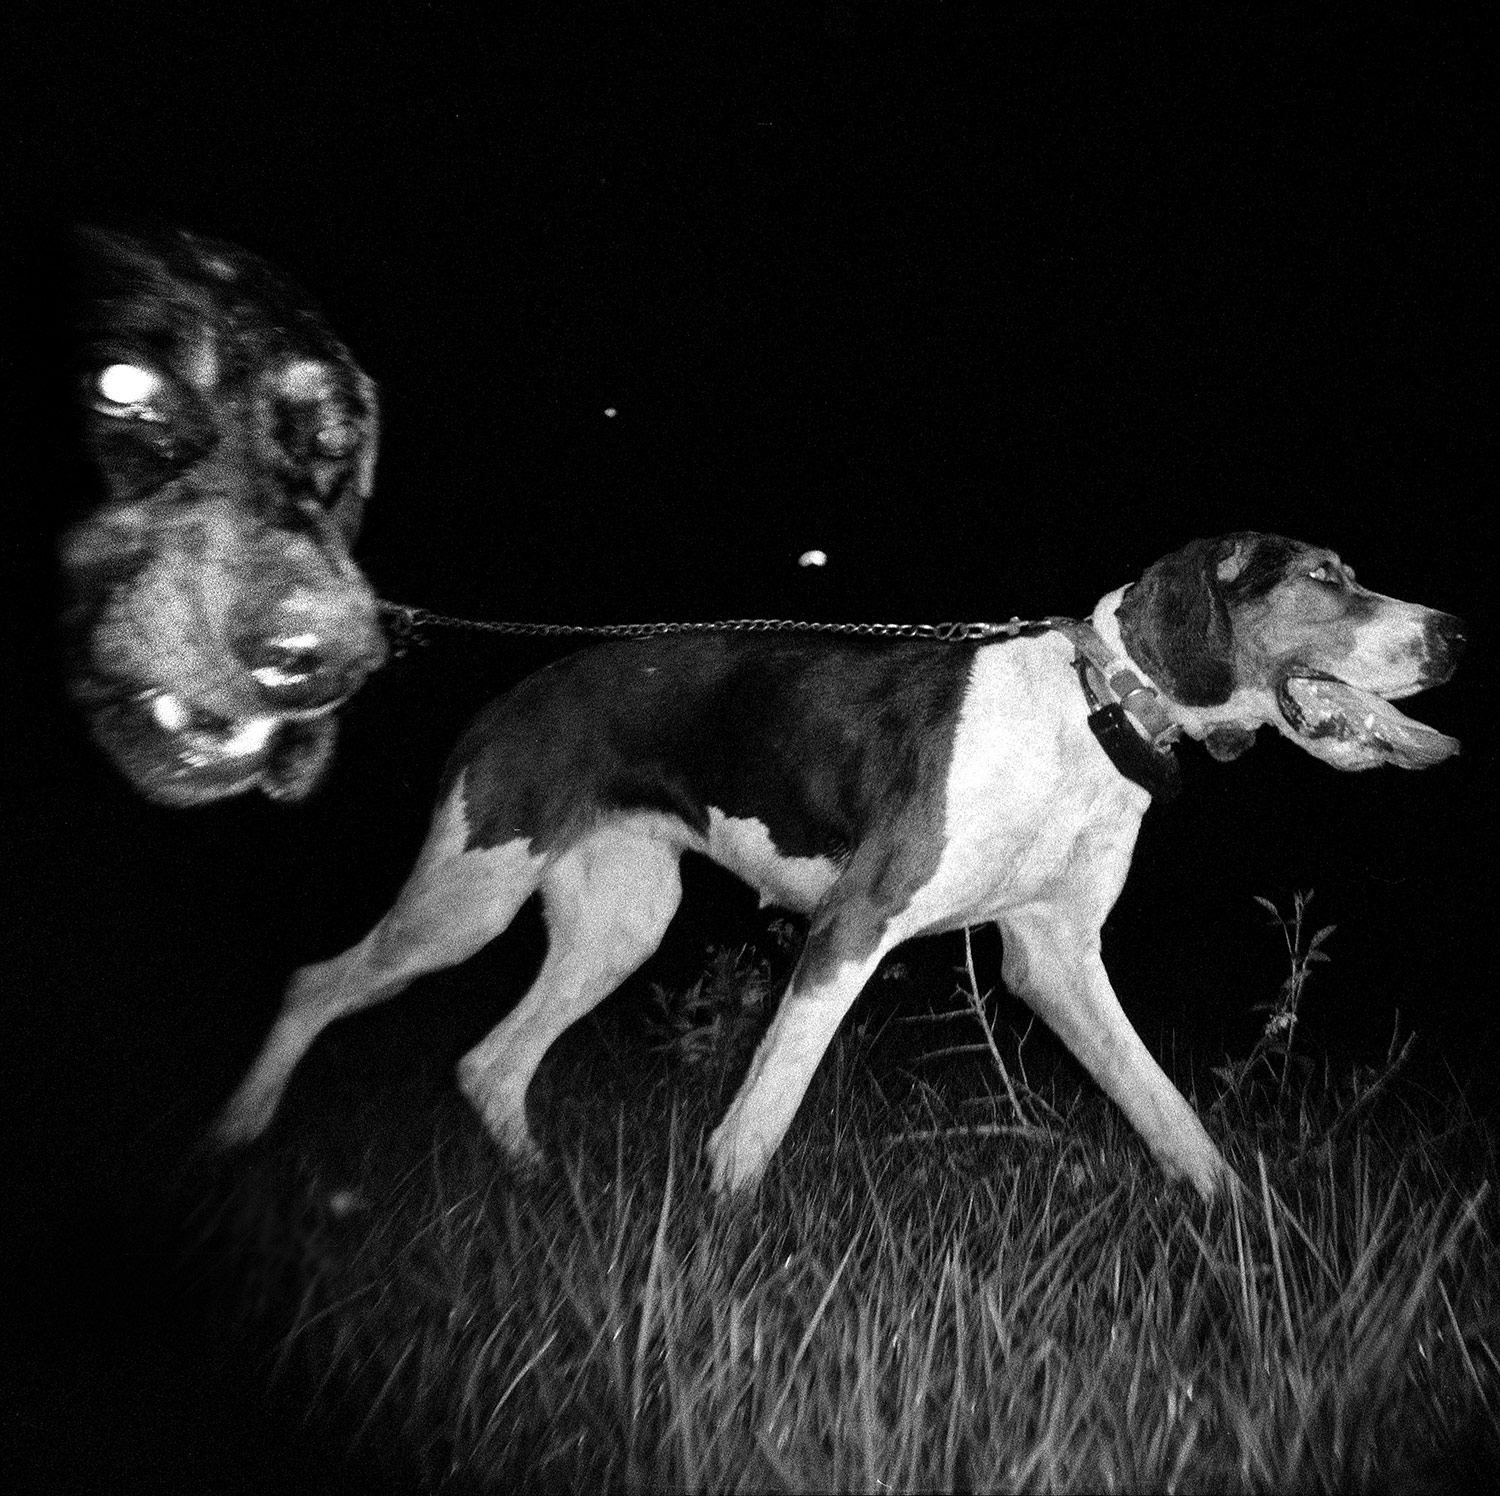 thibodeaux_coons_hunting_dogs_night_dark_woods_forest_south_rural_texas_sport_004.JPG